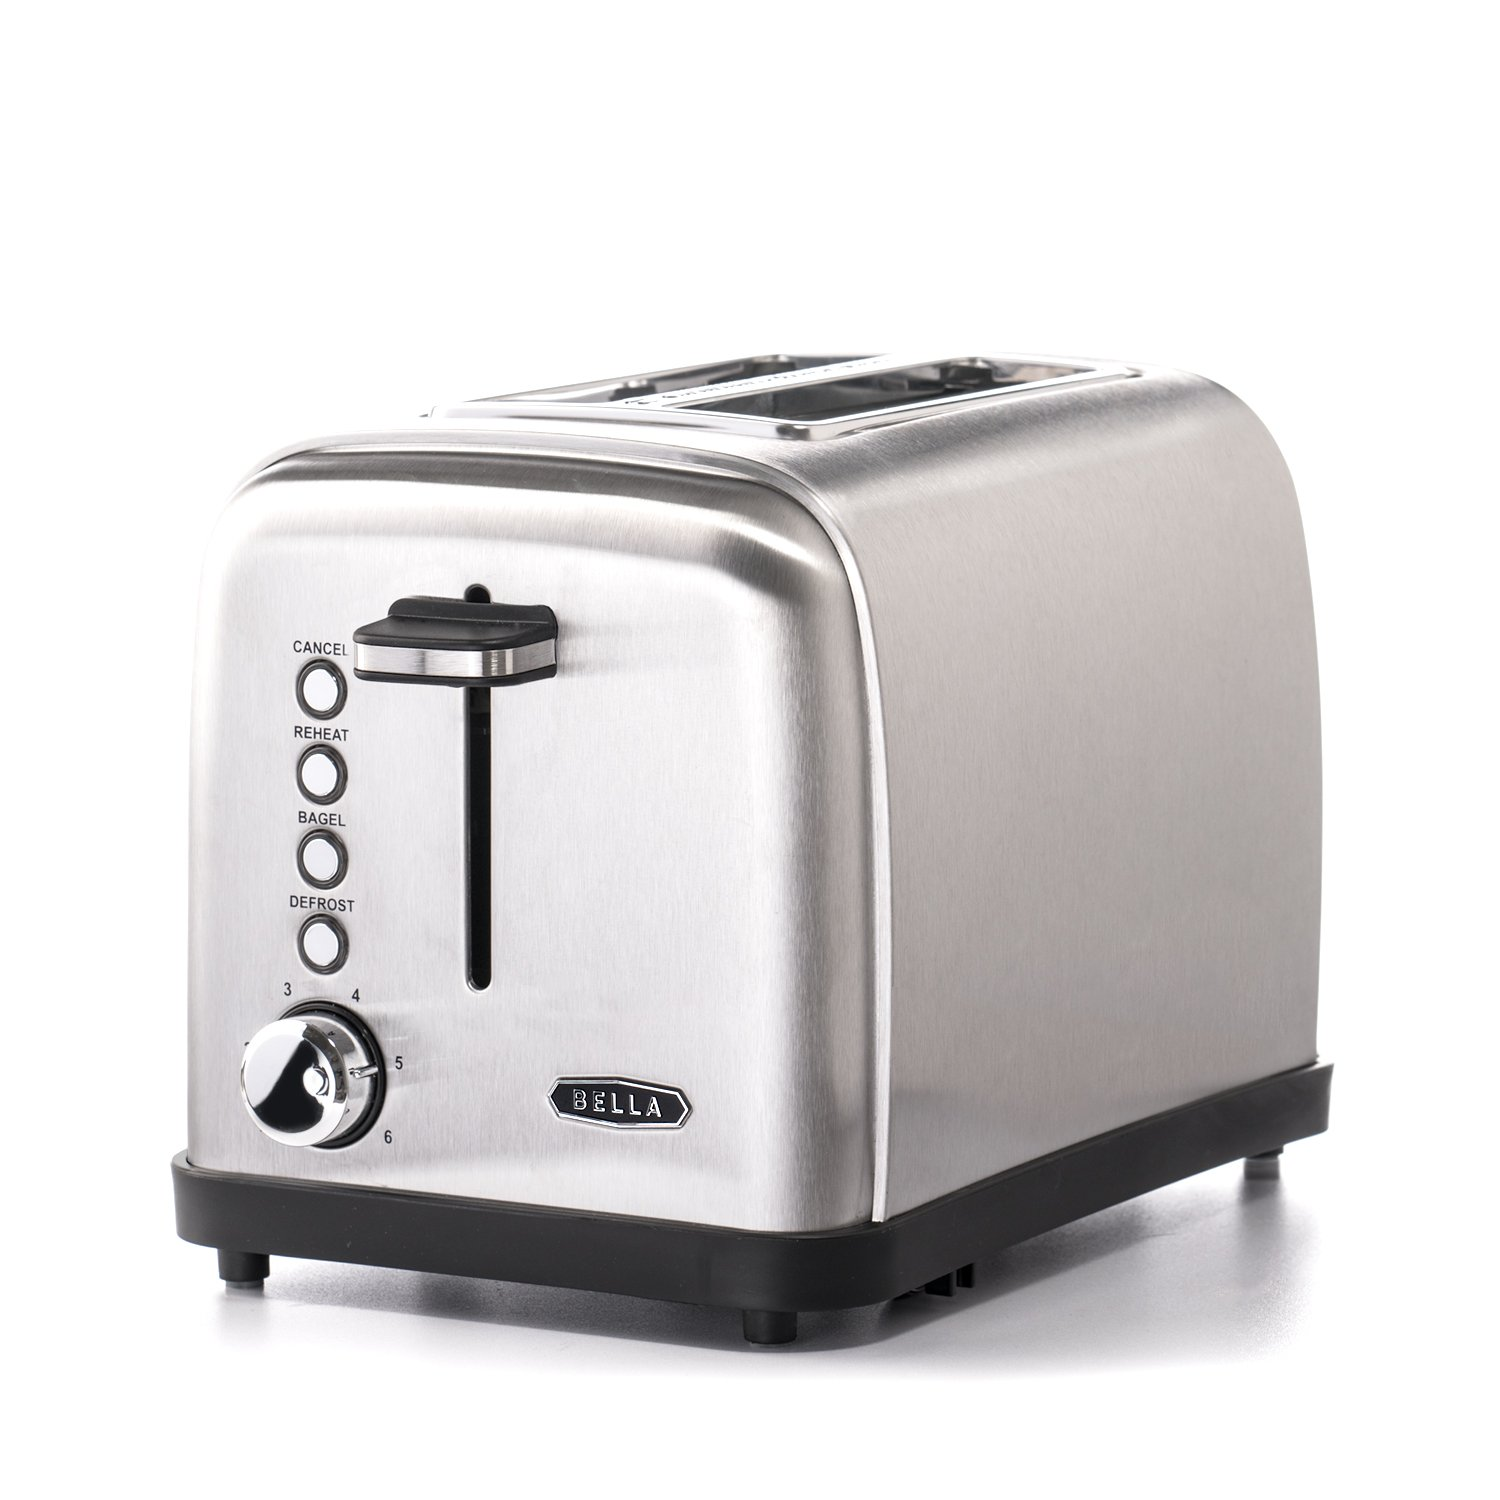 Small Appliances,Macys.com